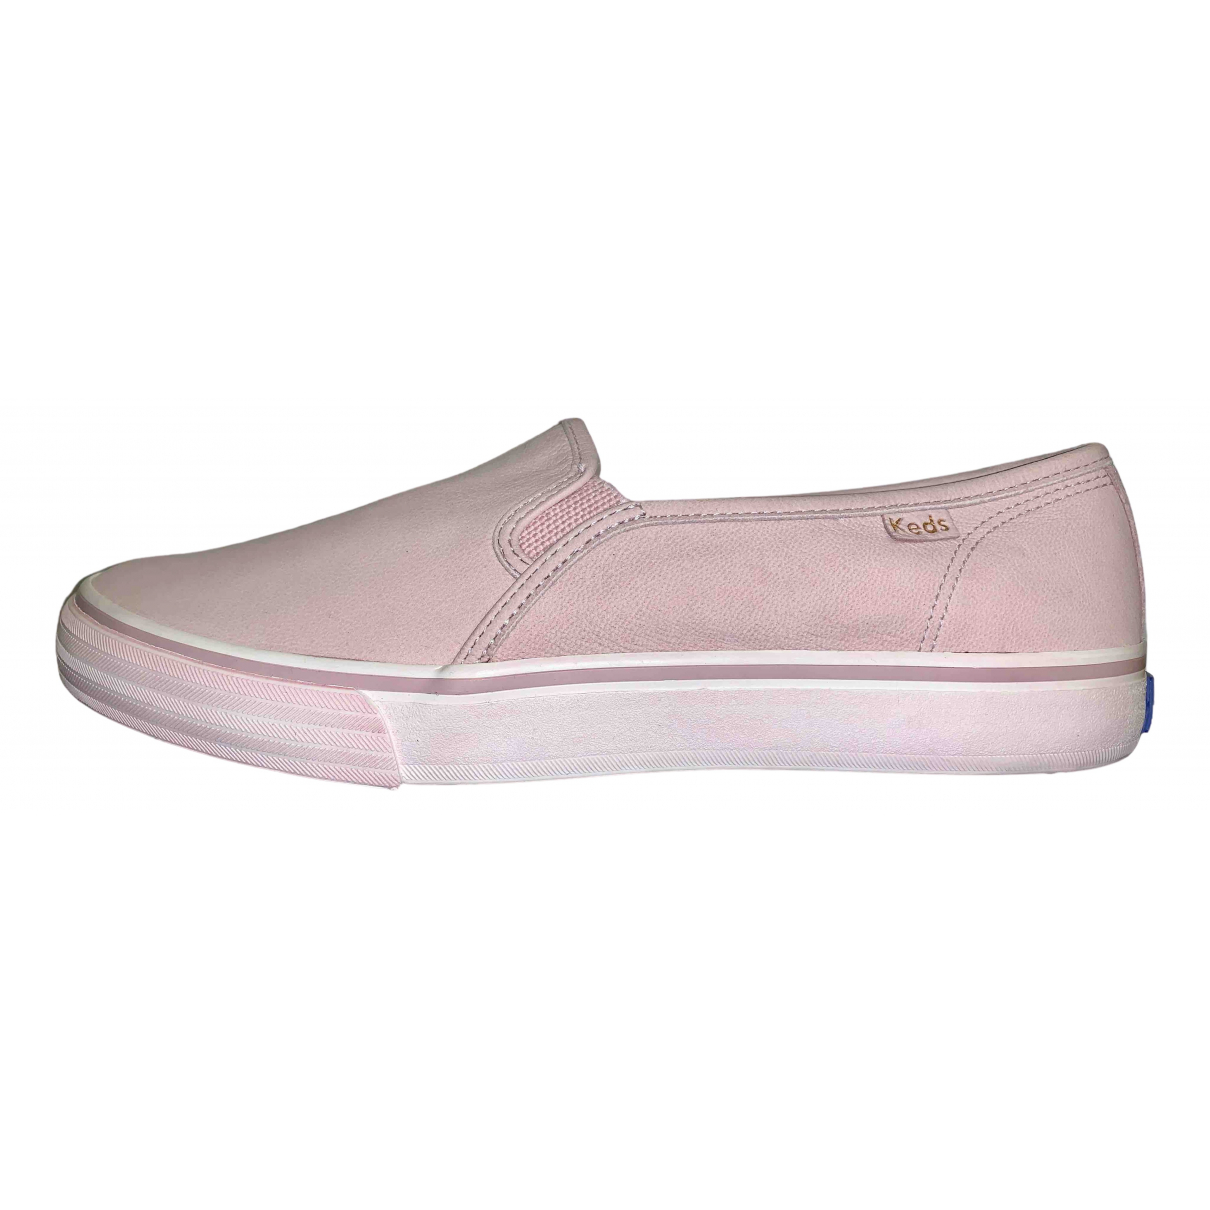 Keds N Pink Leather Trainers for Women 40.5 EU